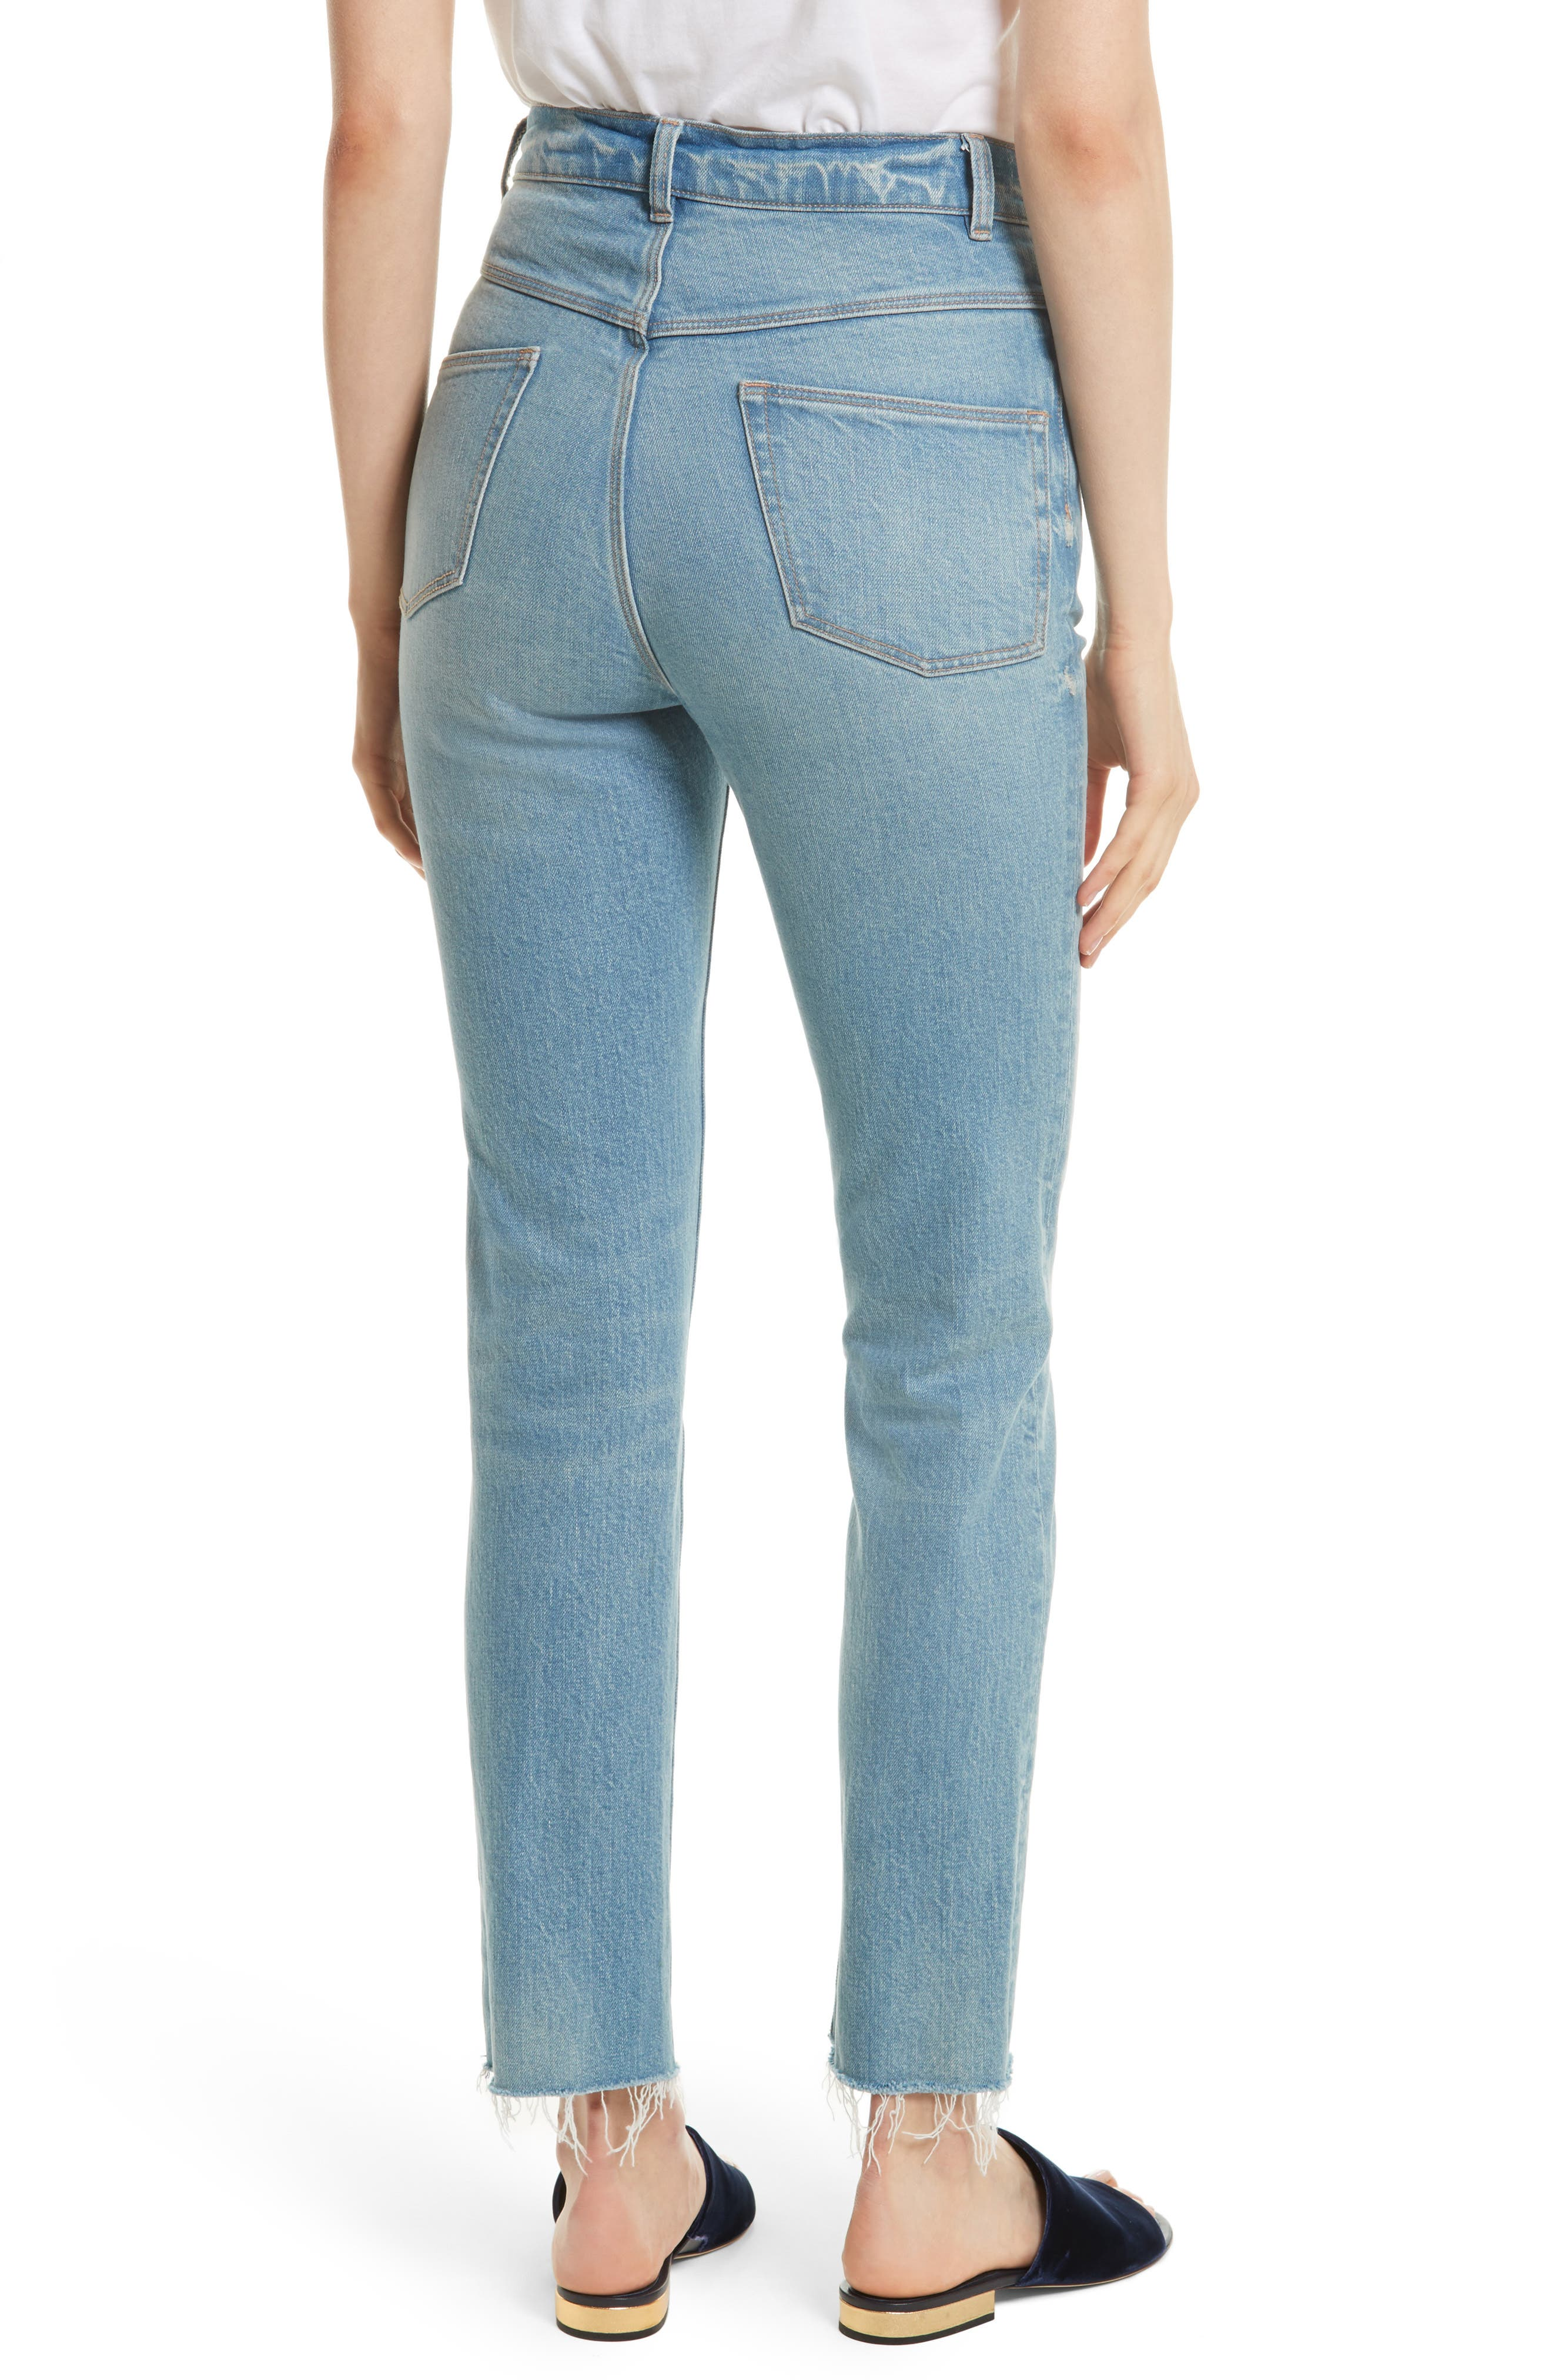 Alternate Image 2  - La Vie Rebecca Taylor Ines High Waist Ankle Jeans (Bluebell)